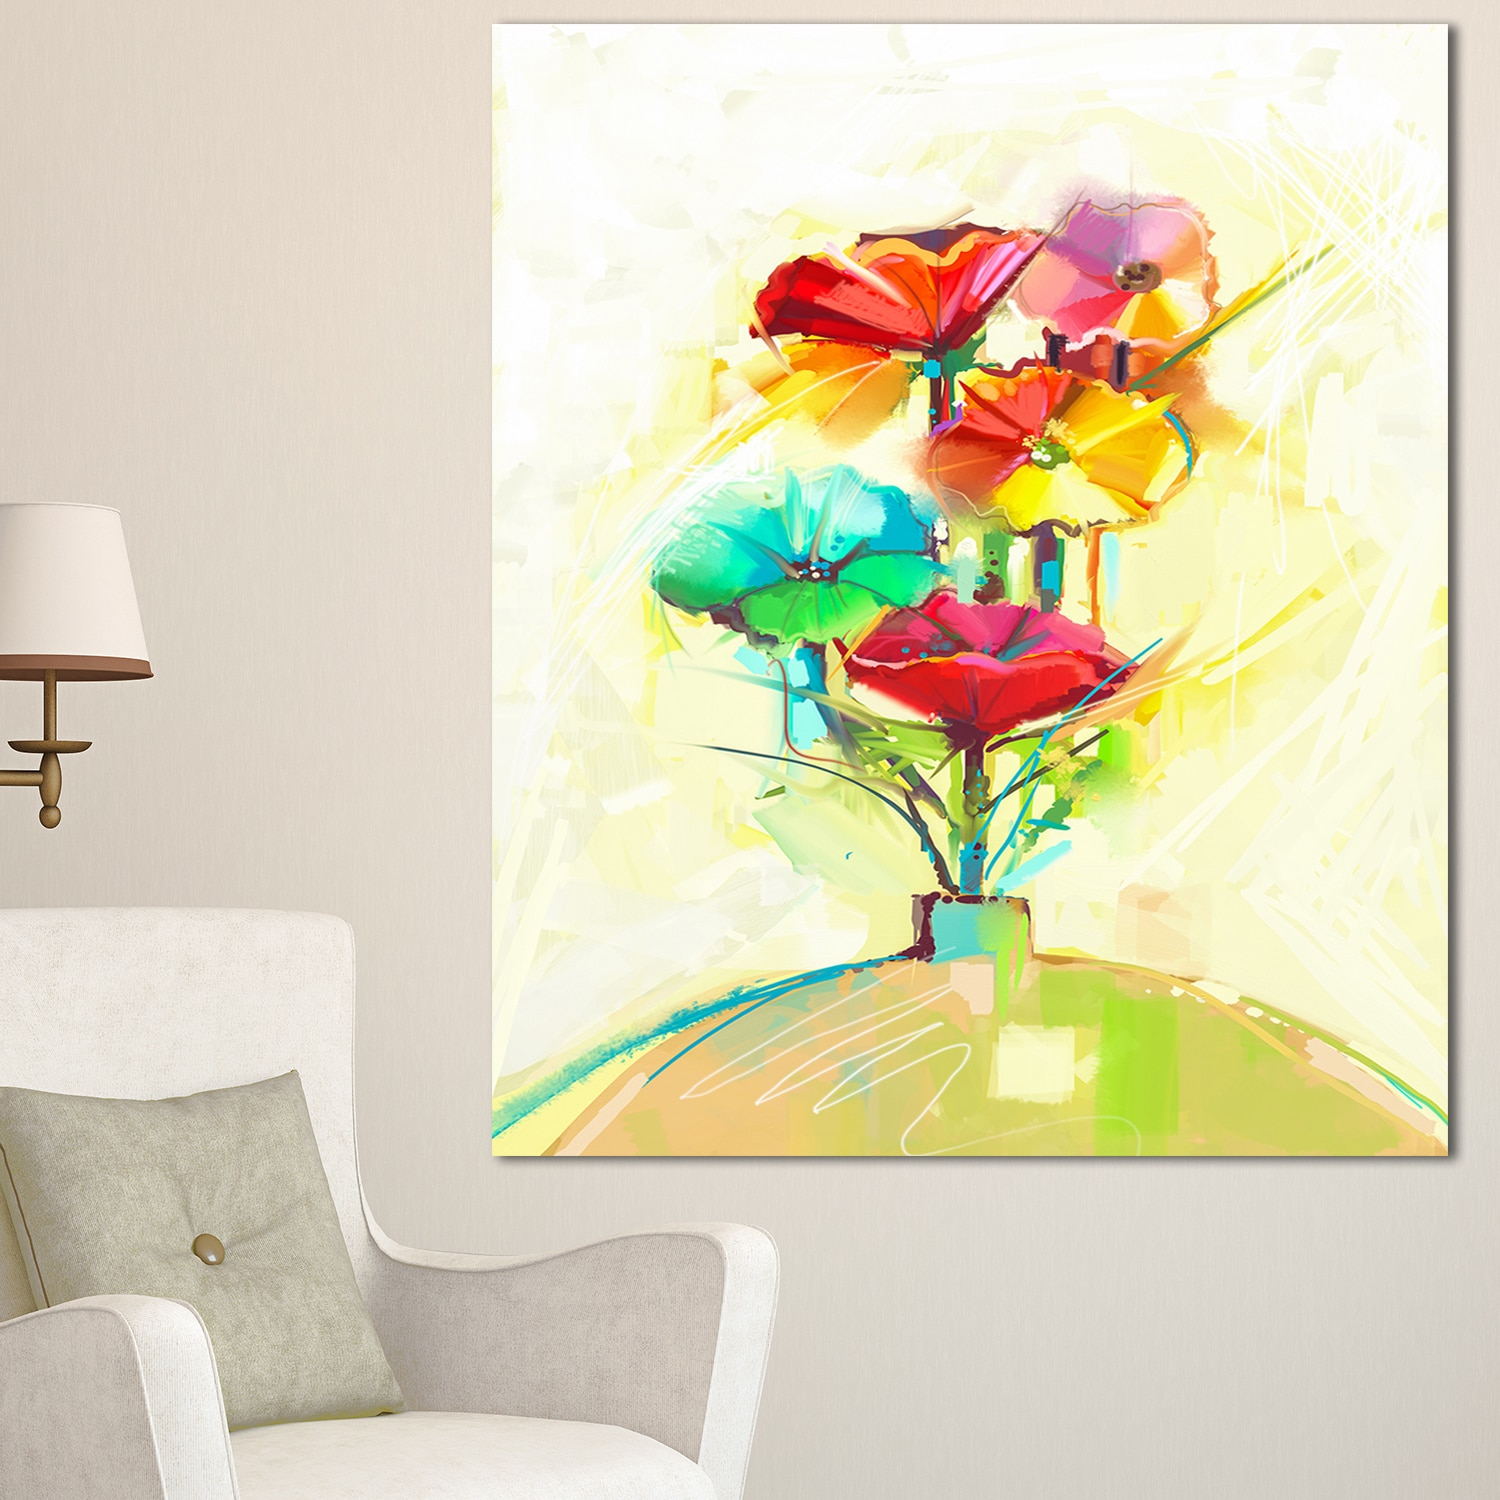 Outstanding Floral Wall Art Canvas Image Collection - The Wall Art ...